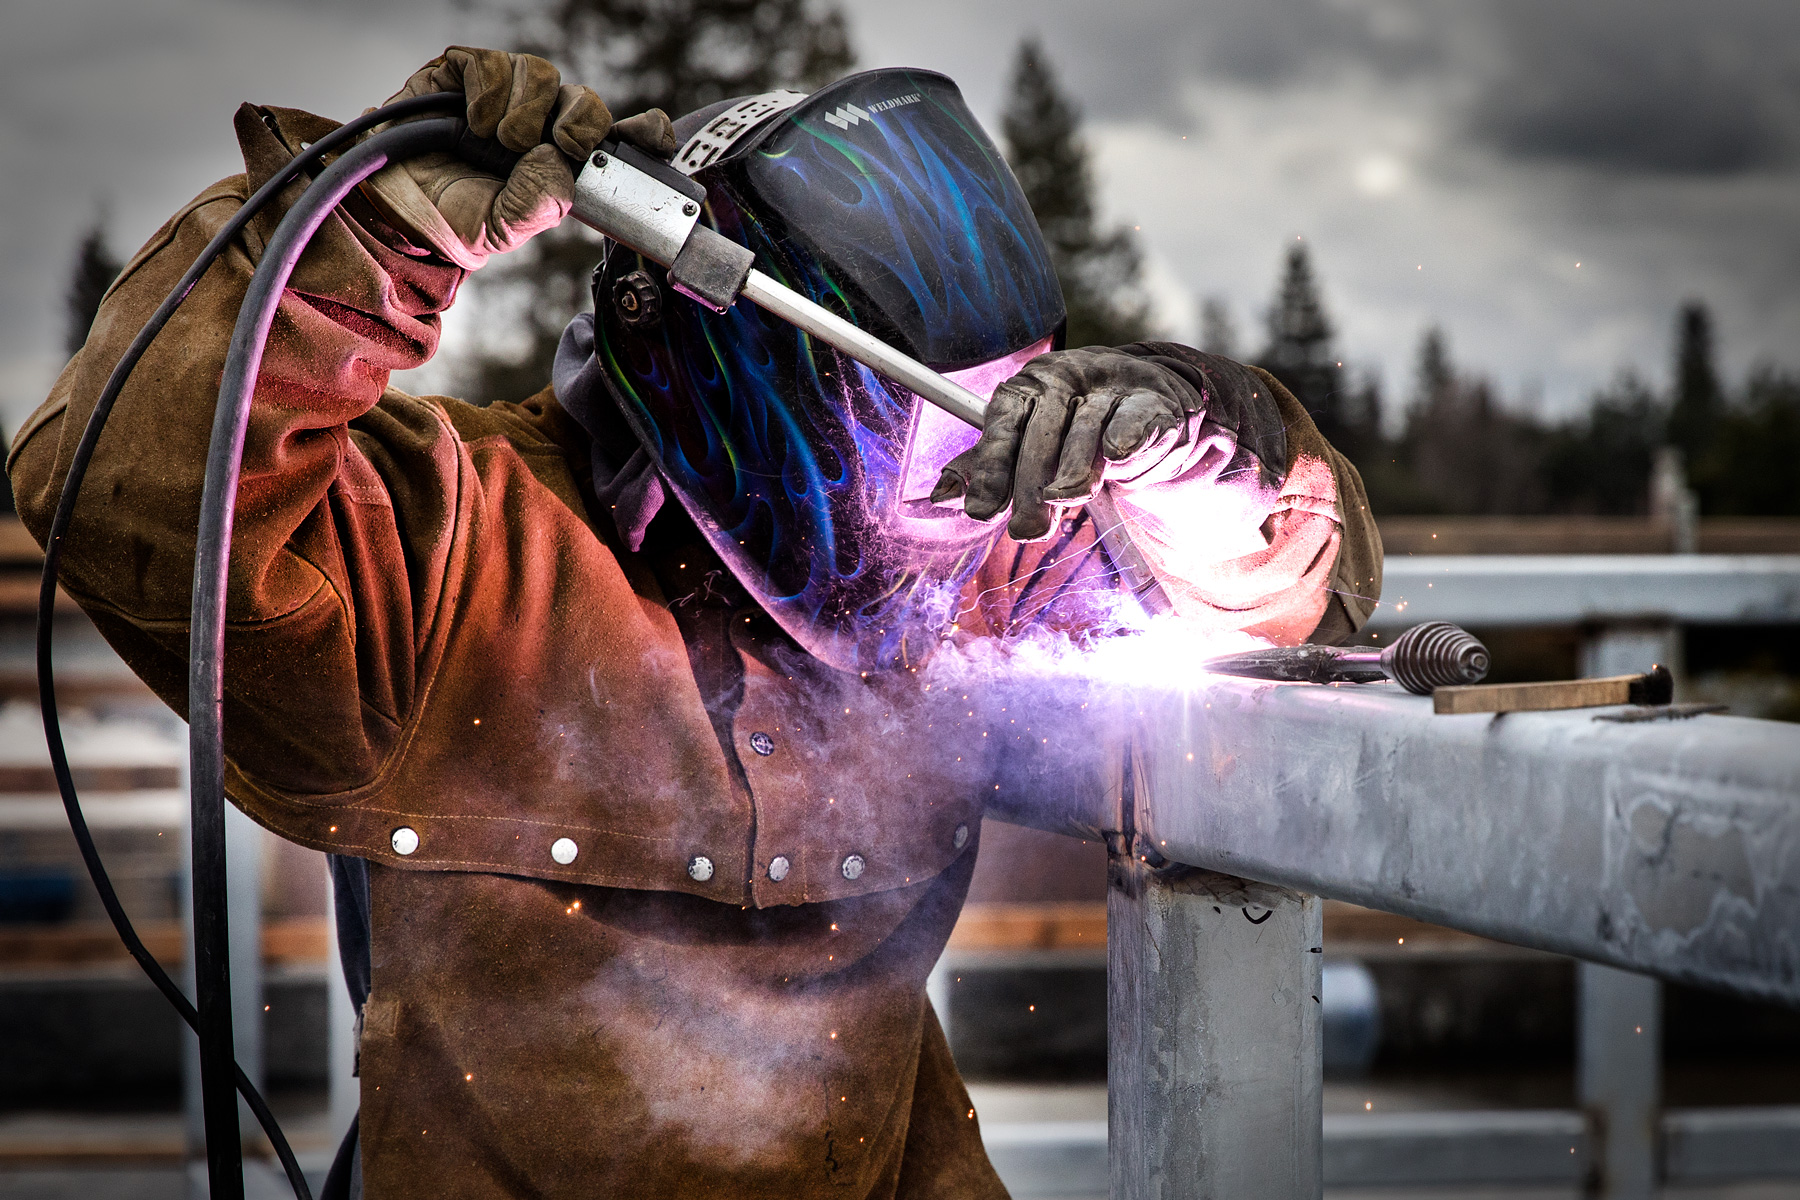 Welder on construction worksite in the San Francisco Bay Area. Photo by Chris Constantine.